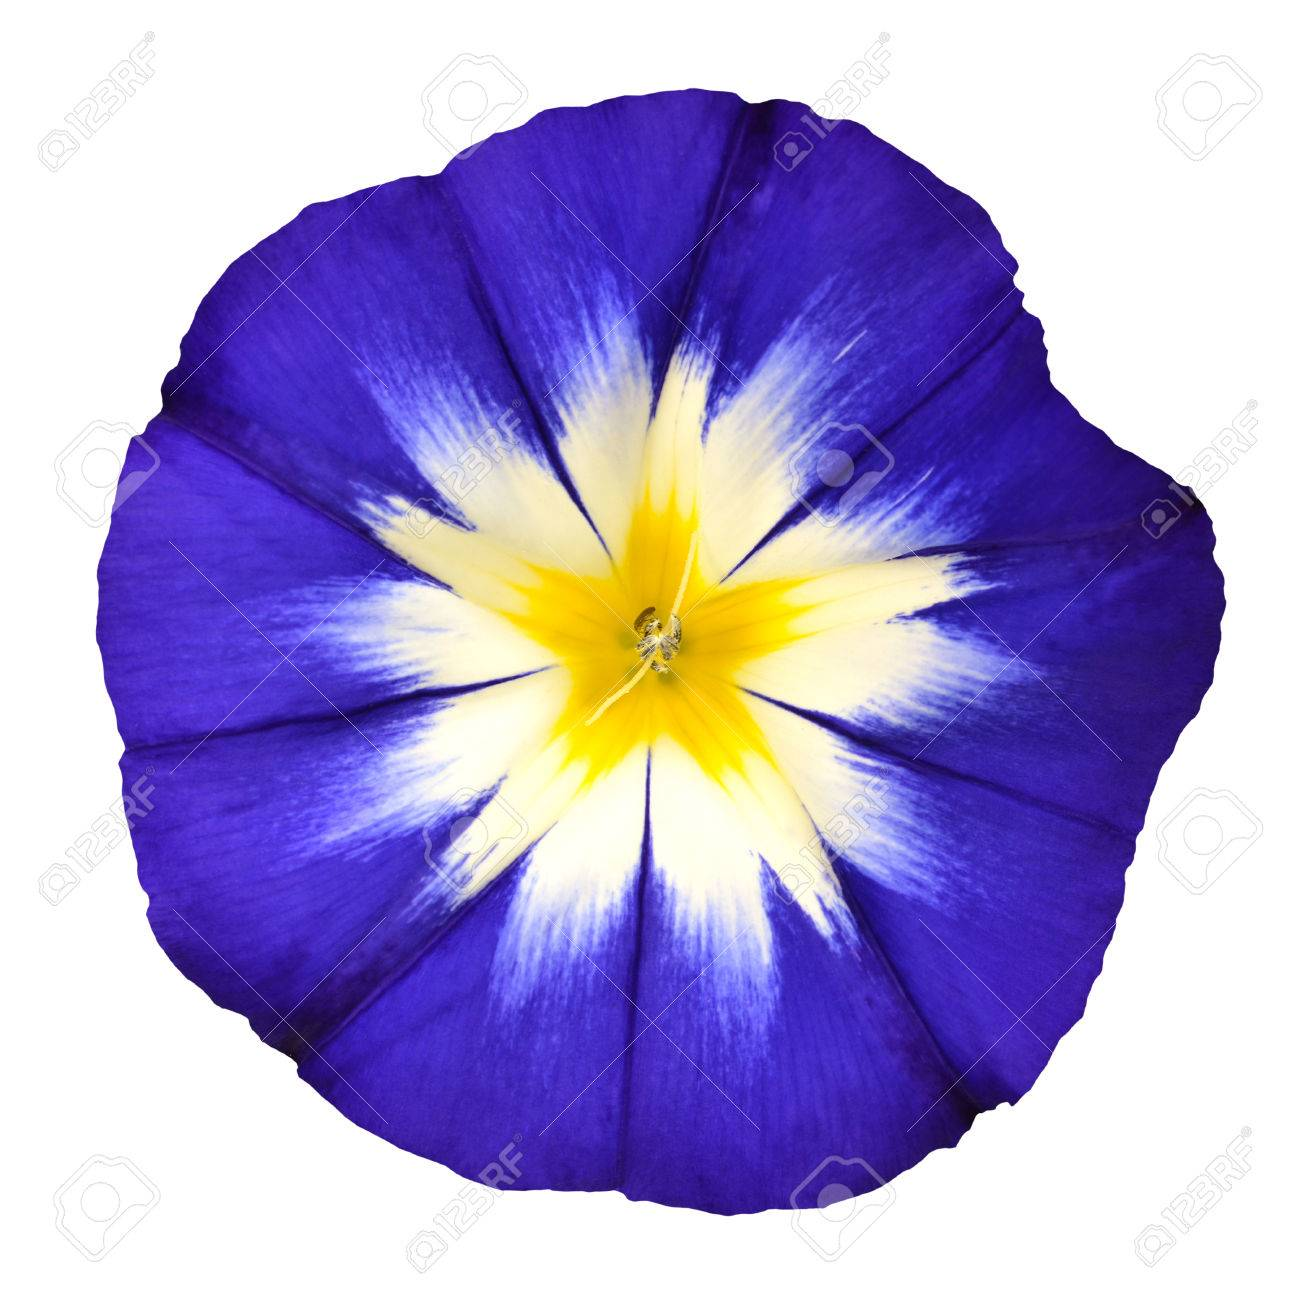 Blue Flower With White Yellow Star Shaped Center Isolated On Stock